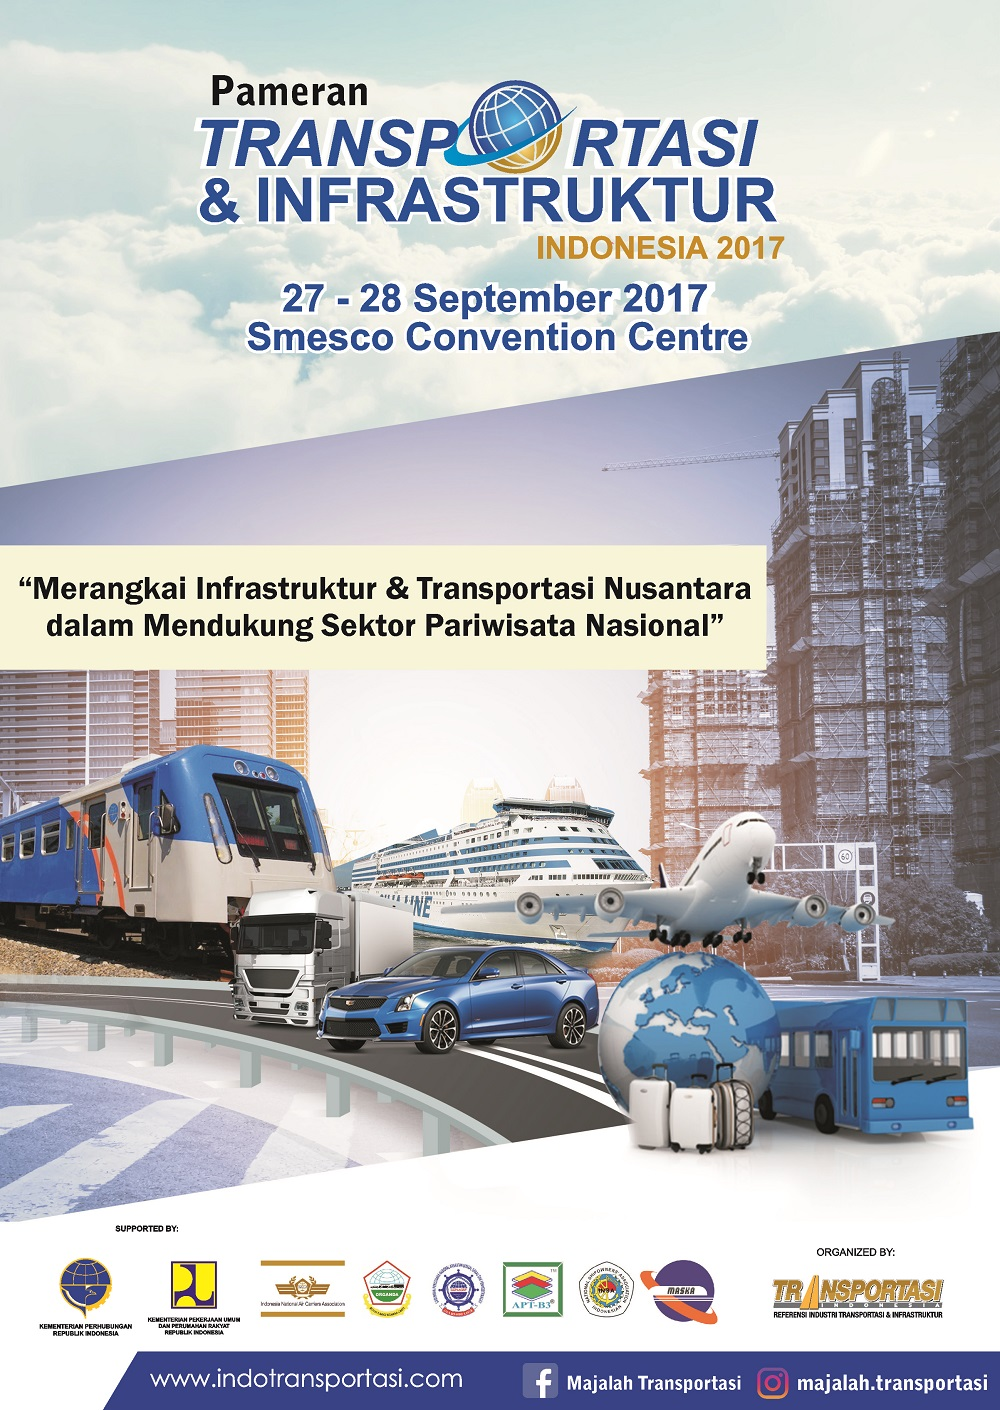 Photo of Pameran Transportasi & Infrastruktur Indonesia, 27 – 28 September 2017